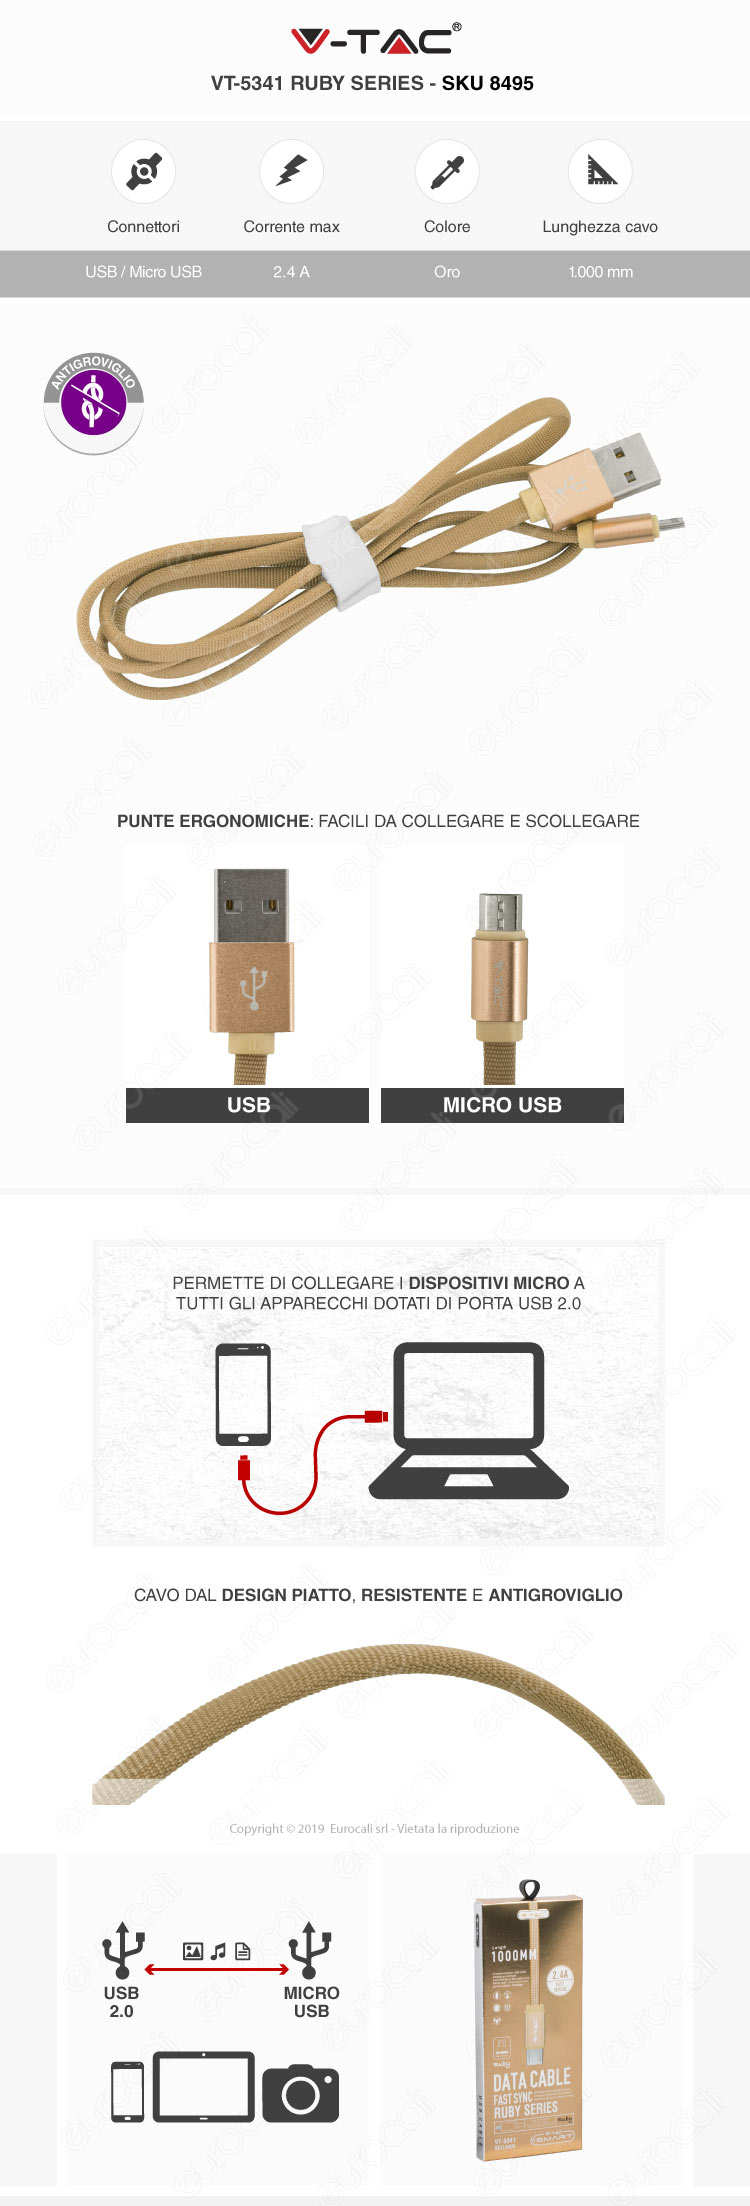 V-Tac VT-5331 platinum series USB Data Cable micro usb Cavo in corda Colore Oro 1m